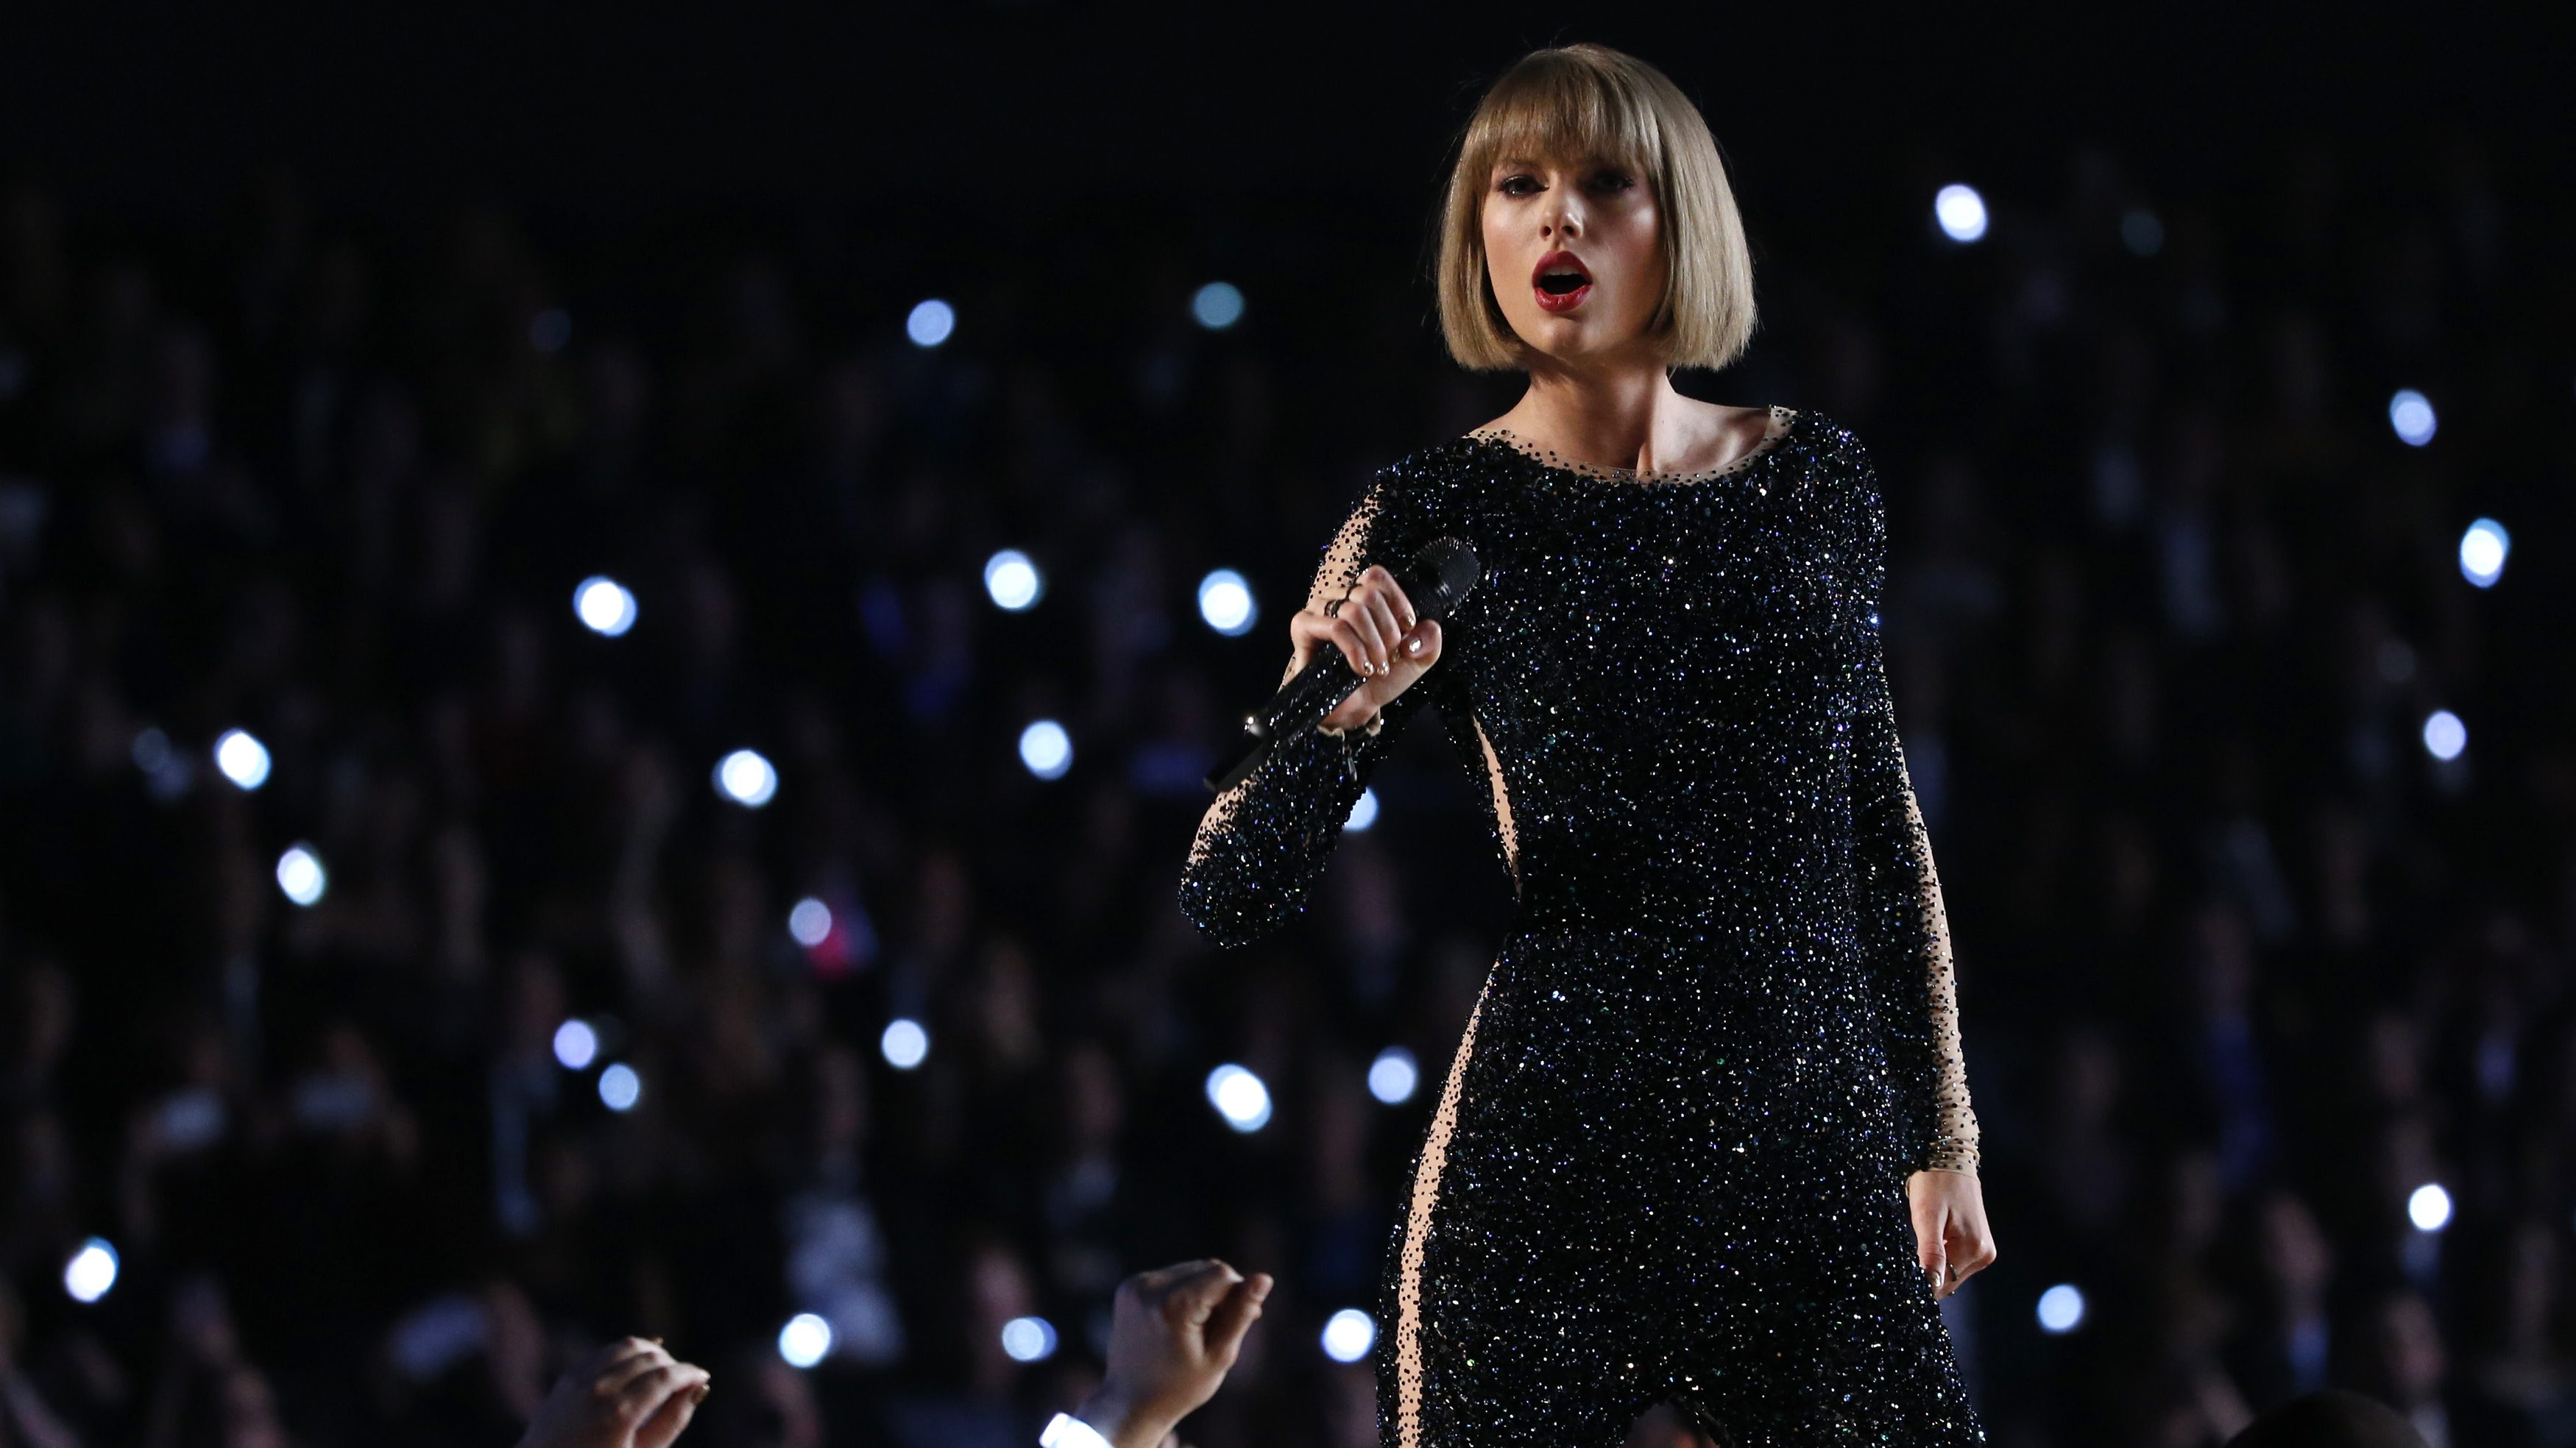 """Taylor Swift performs """"Out of the Woods"""" at the 58th Grammy Awards in Los Angeles, California February 15, 2016.   - RTX273CG"""